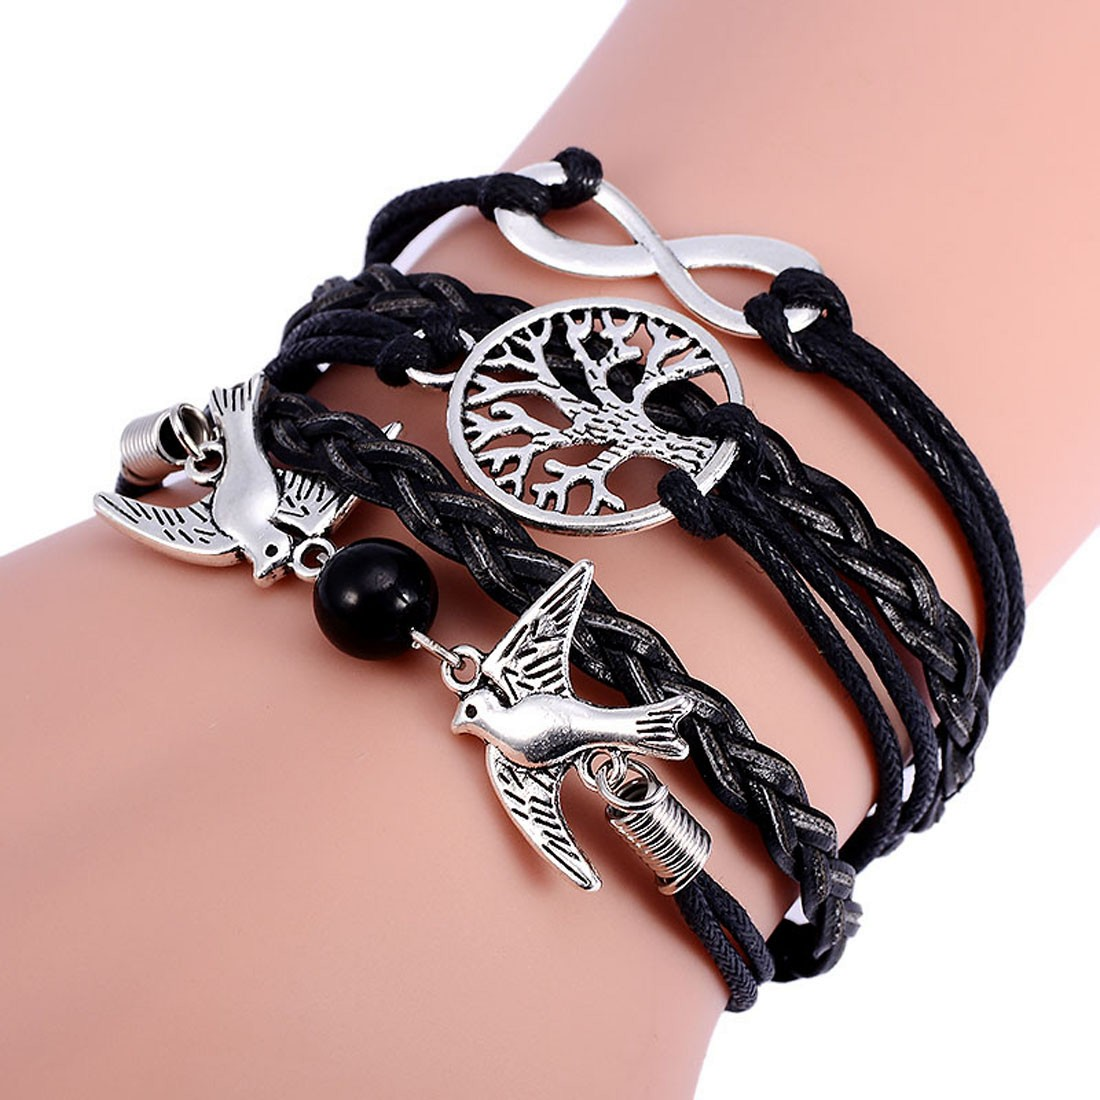 Leather Wrap Charm Bracelet: Lady Leather Woven Charm Bracelet Flying Bird Bangle Wrap